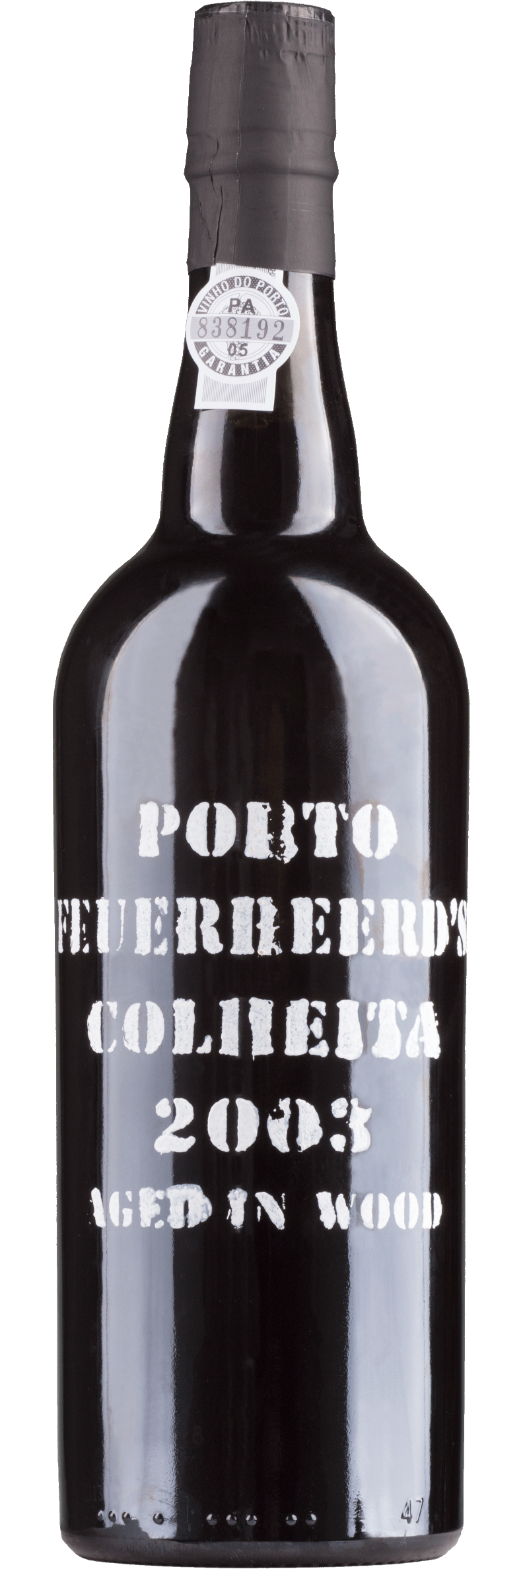 Feuerheerds Colheita 2003 Port 75CL